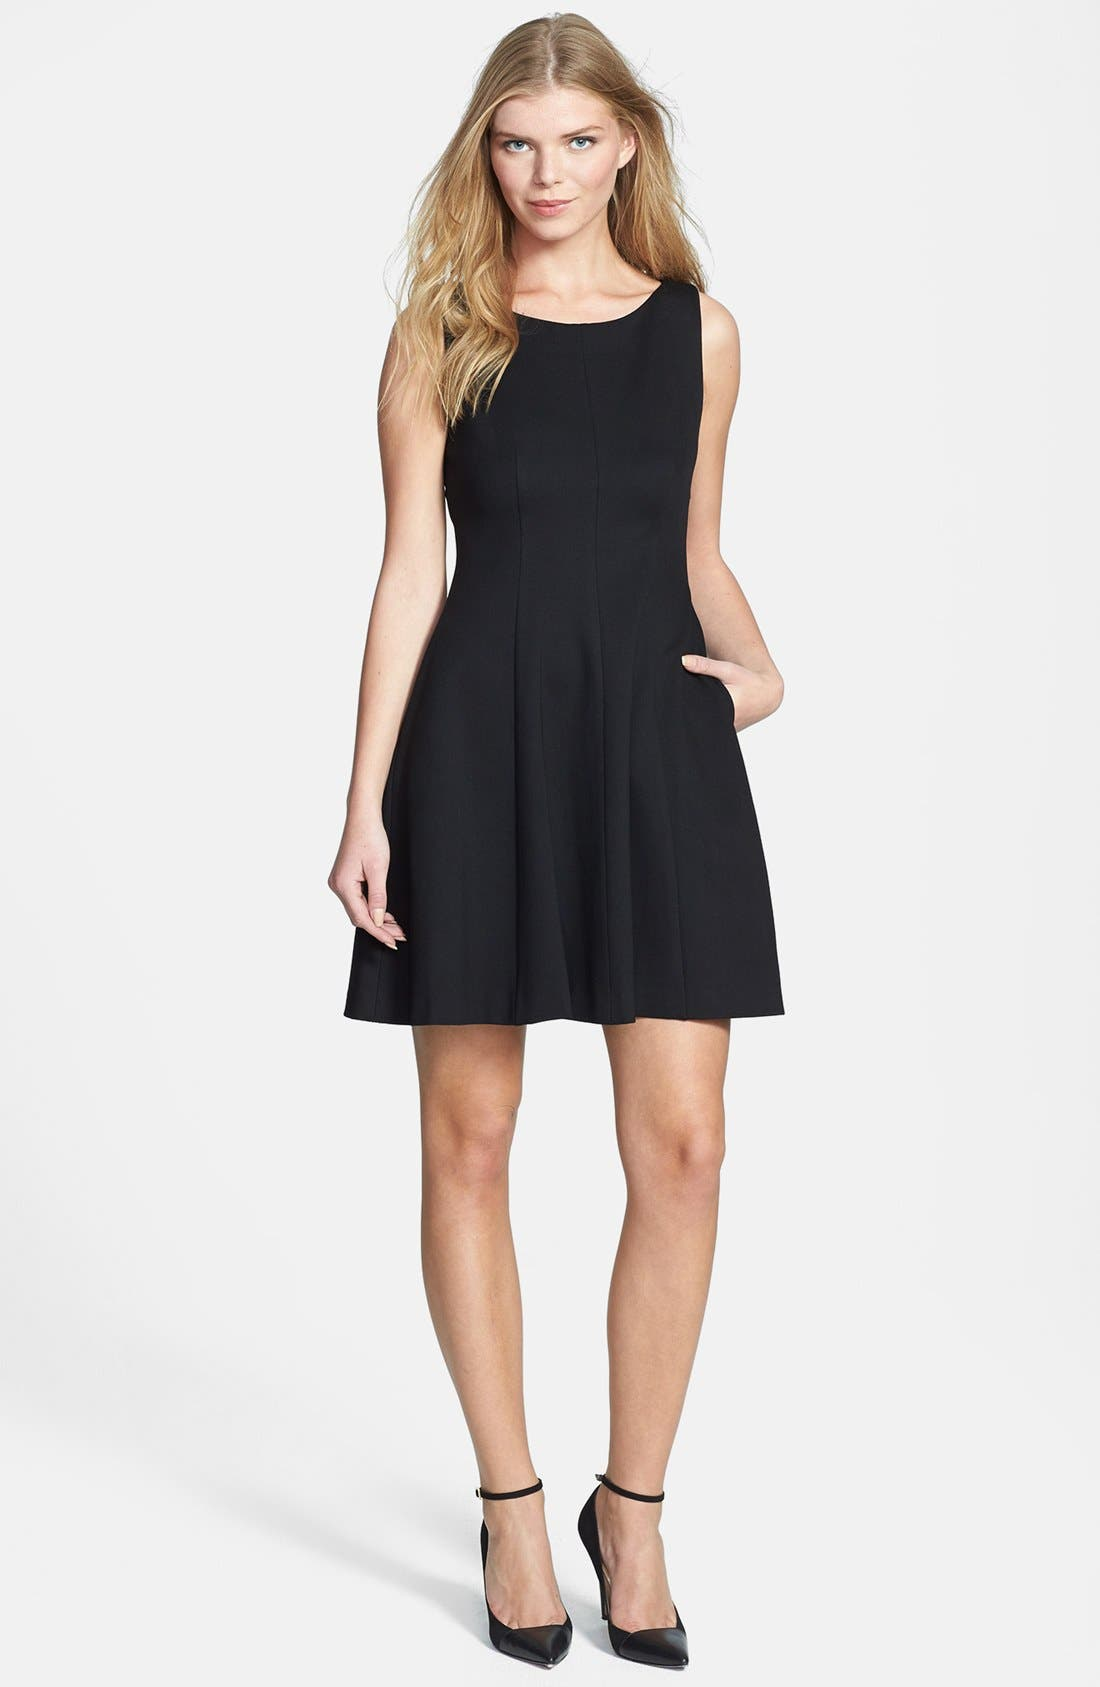 Alternate Image 1 Selected - Rachel Roy Cutout Back Fit & Flare Dress